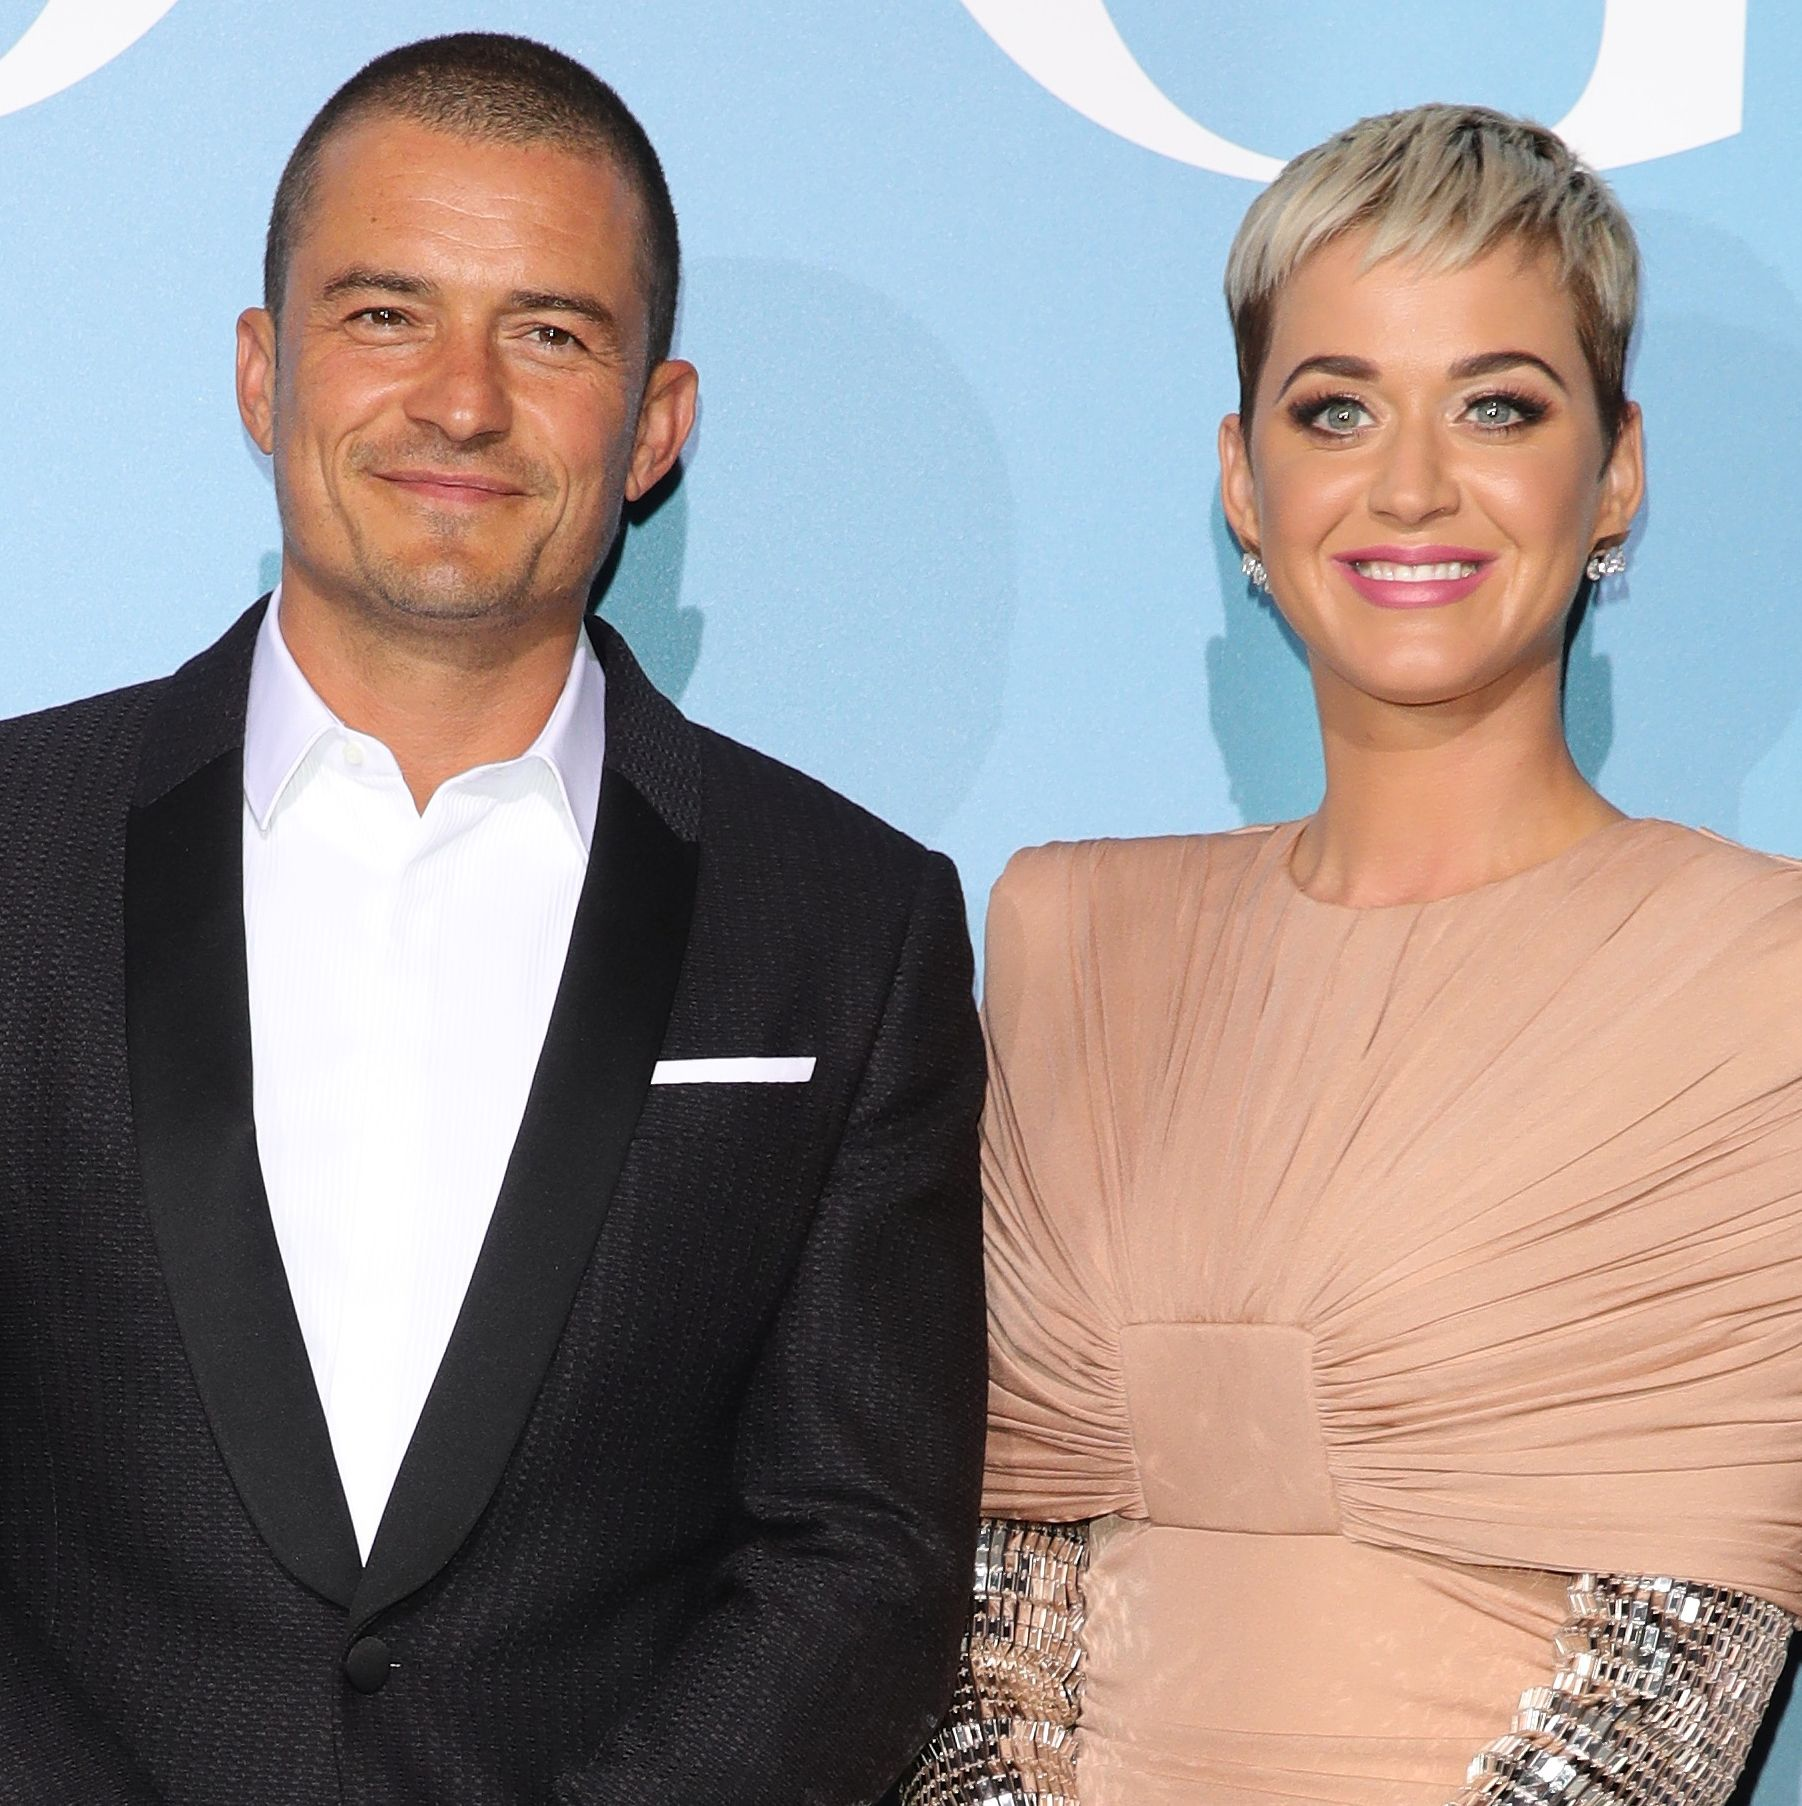 Orlando Bloom and girlfriend Katy Perry